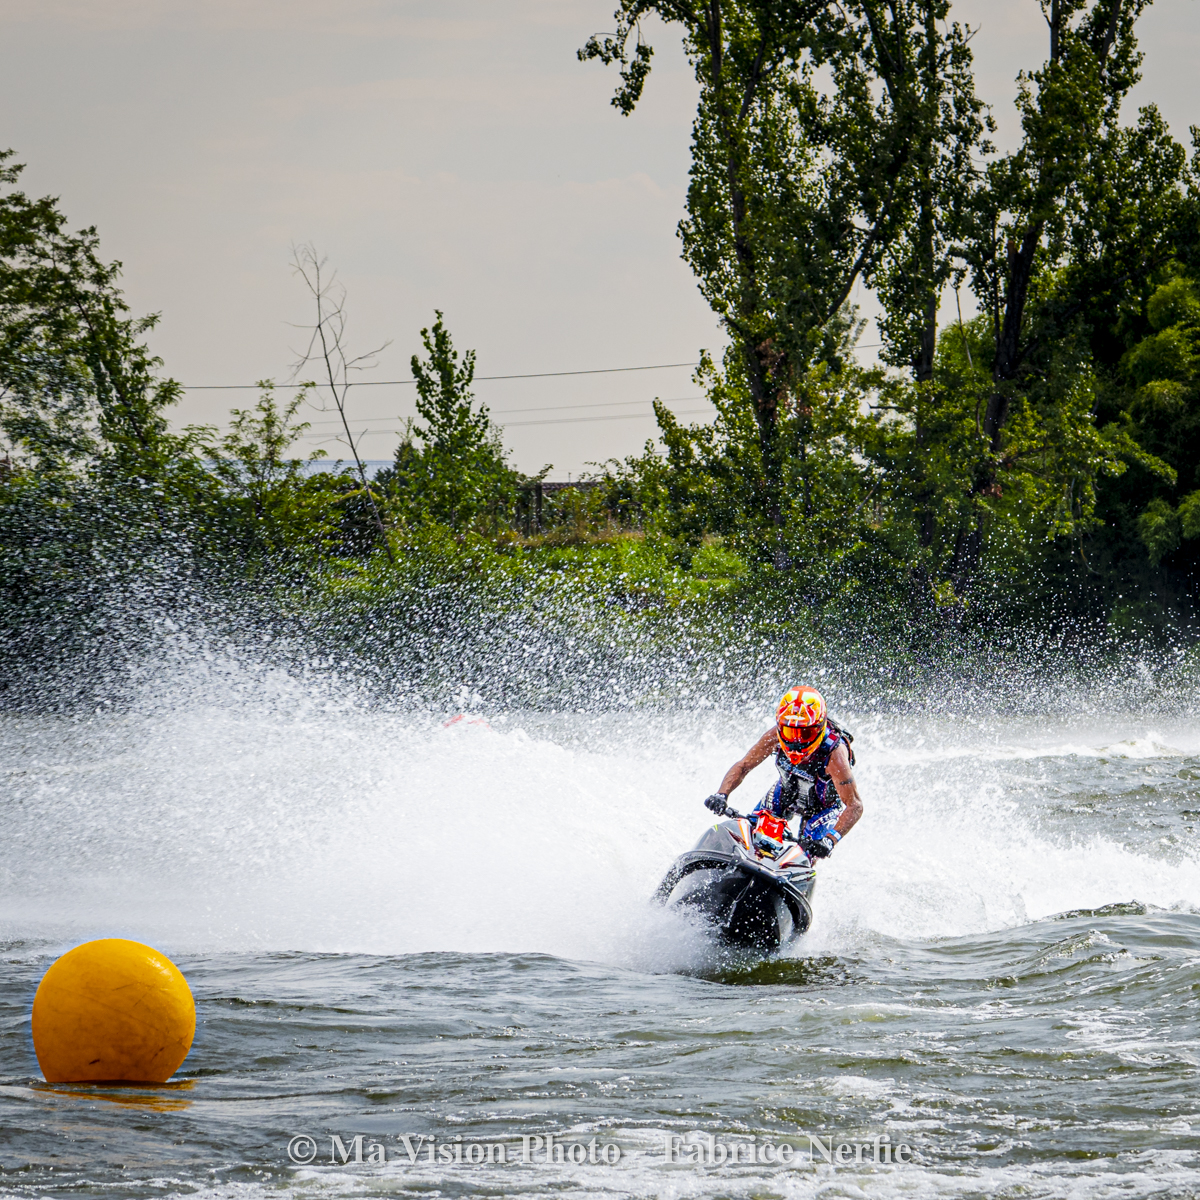 Photo Evenement Championnat de France Jetski Moissac Photographe Fabrice-Nerfie-16